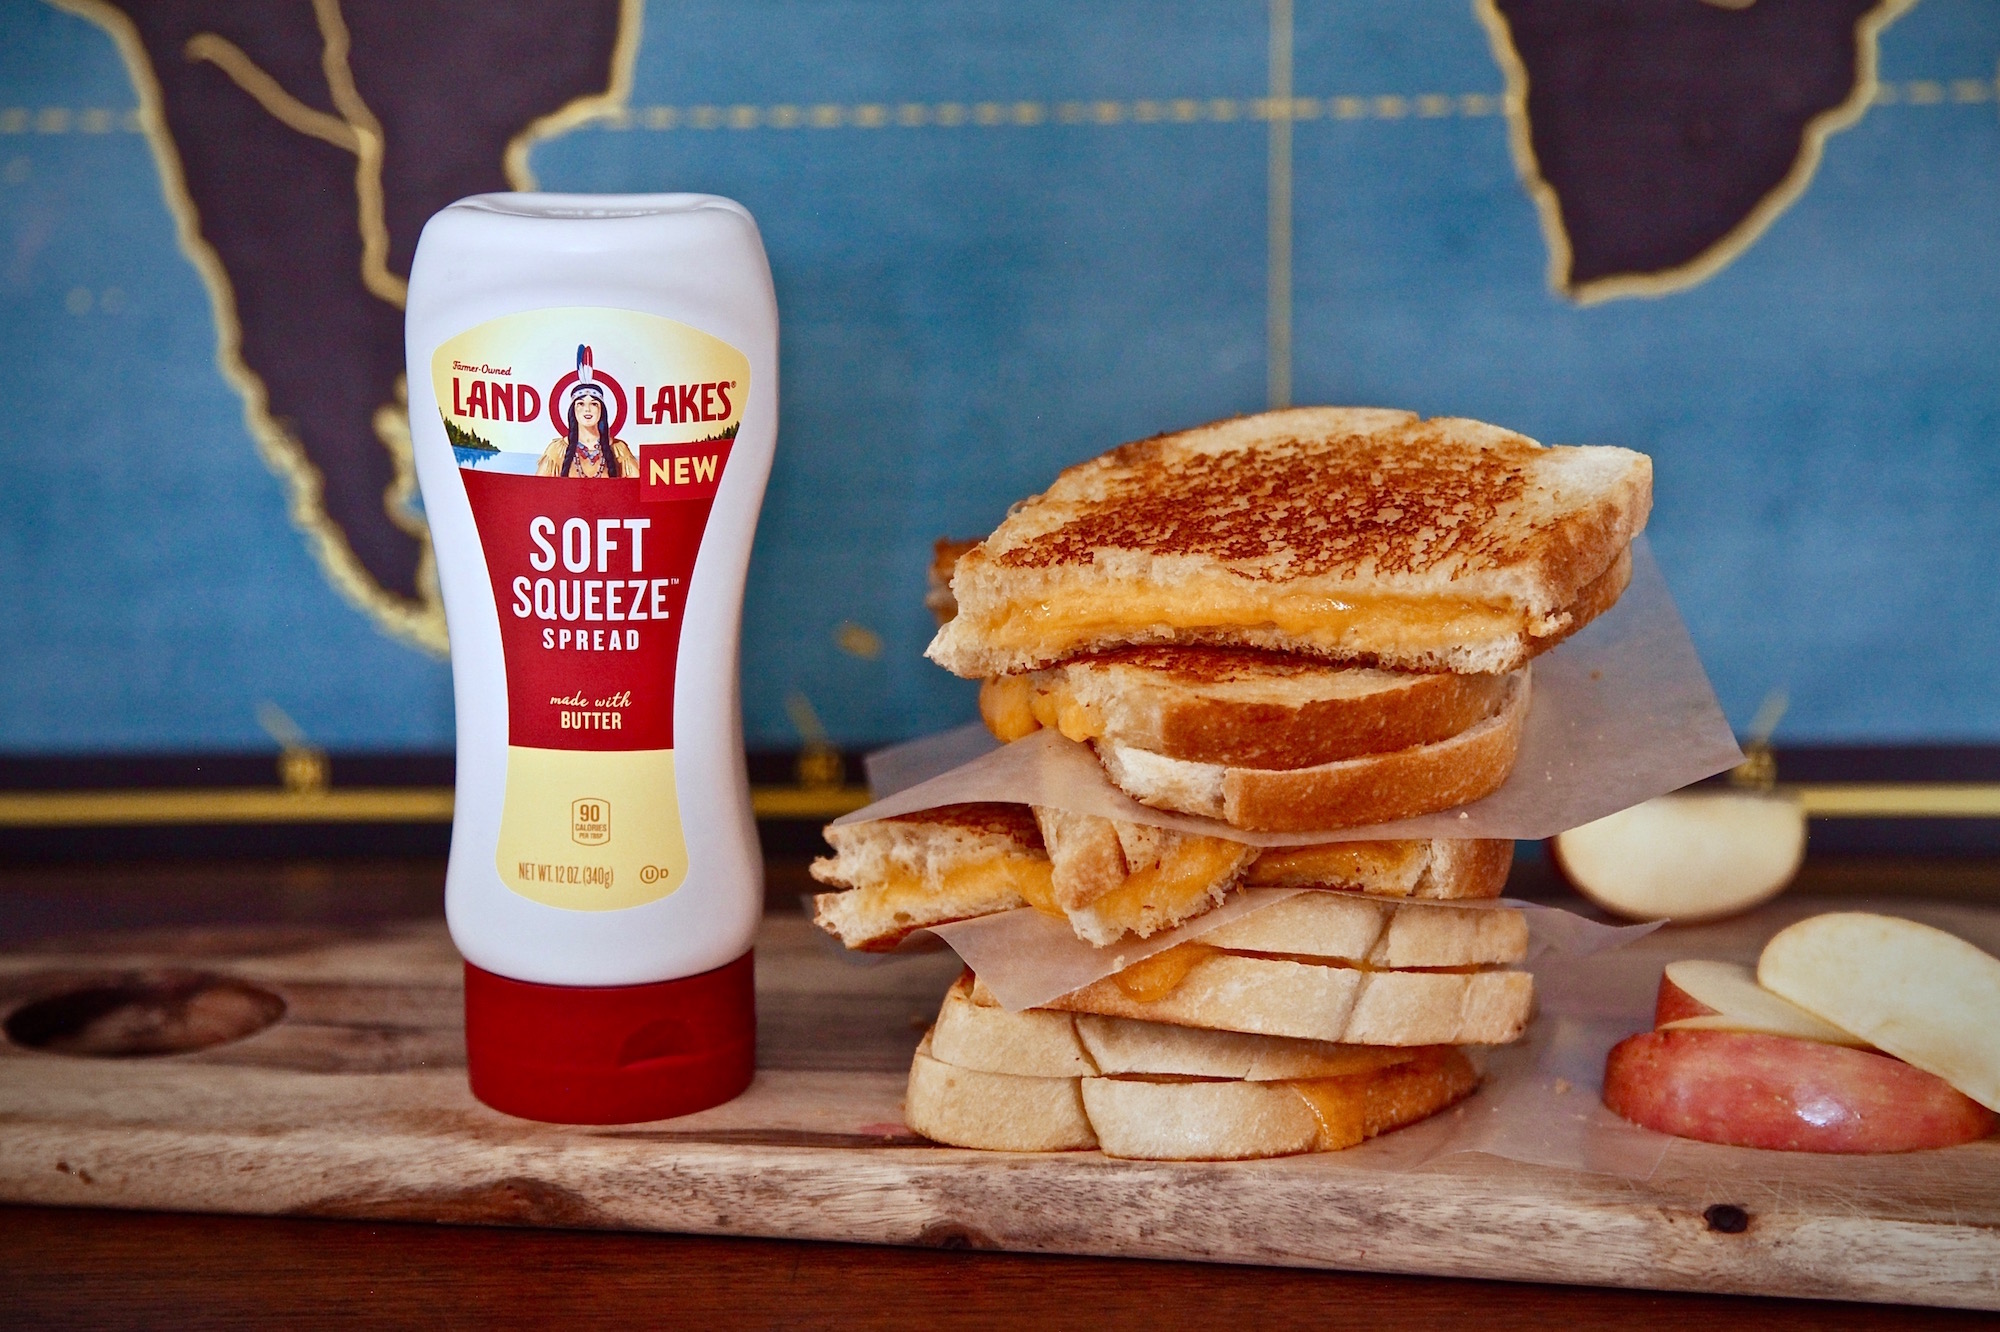 Easiest Crispy Grilled Cheese Sandwich With New Land O' Lakes Soft Squeeze Spread